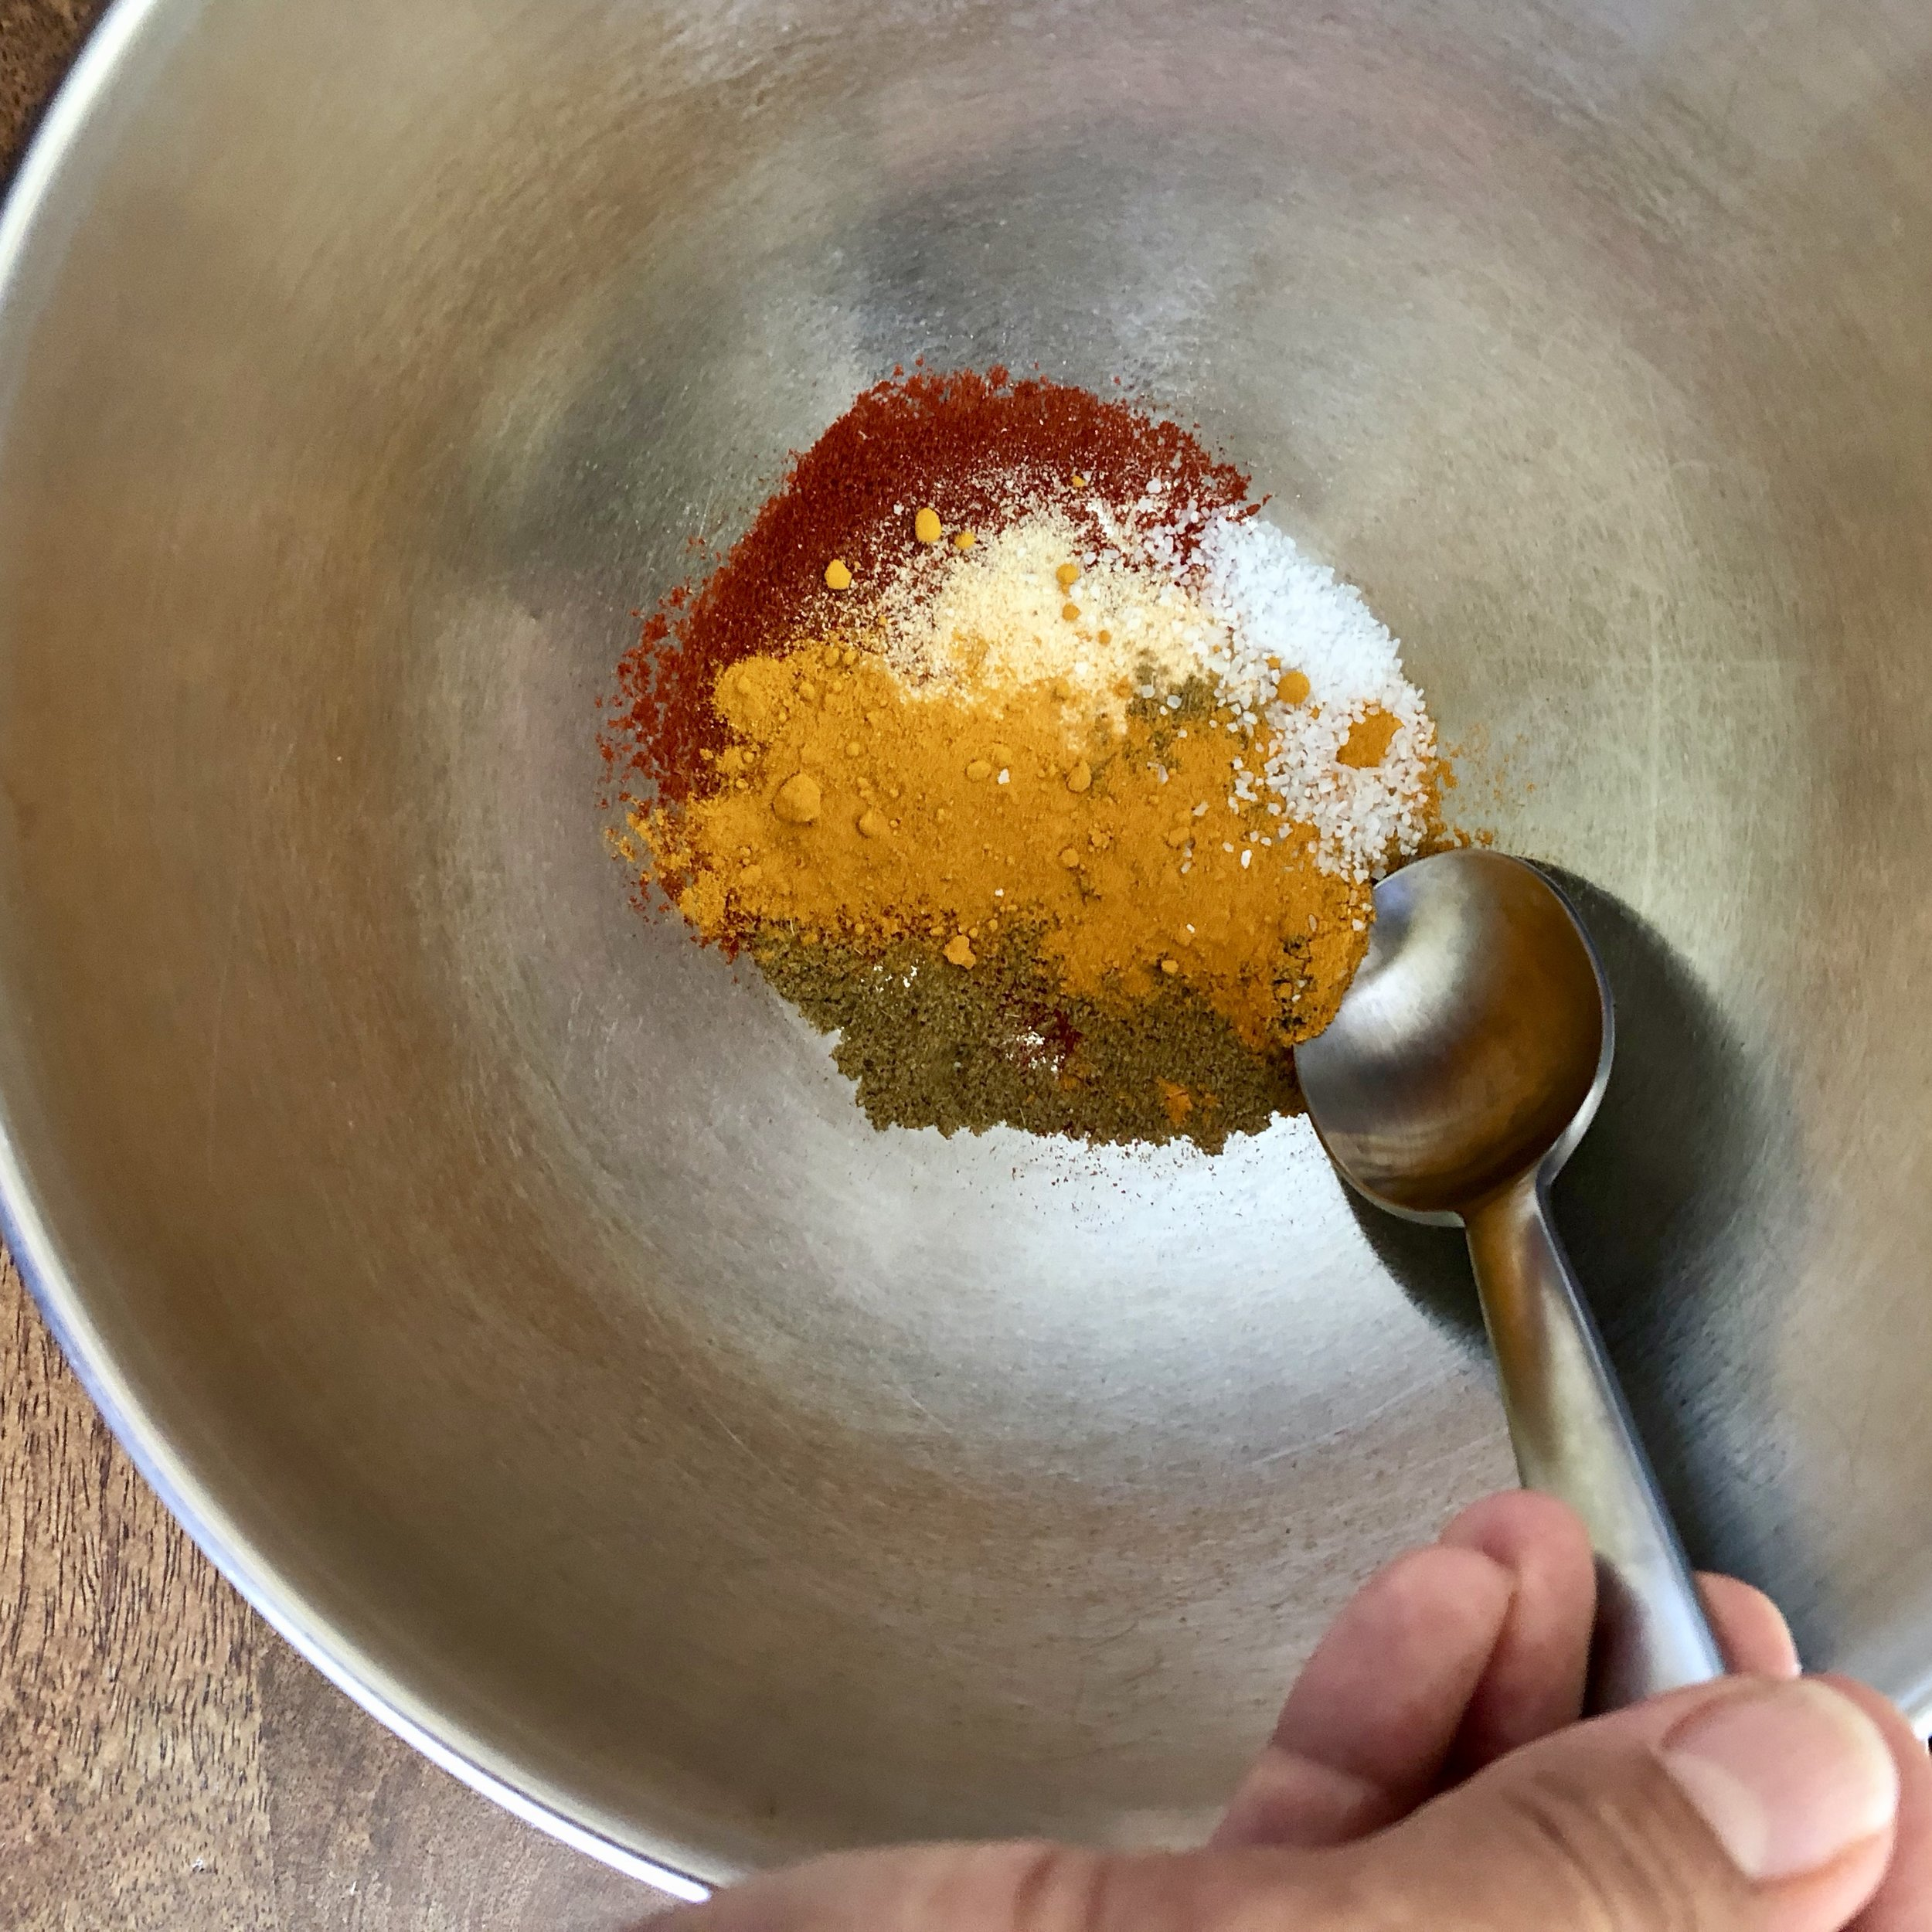 Step 2: - In a bowl, mix together your selected spices.